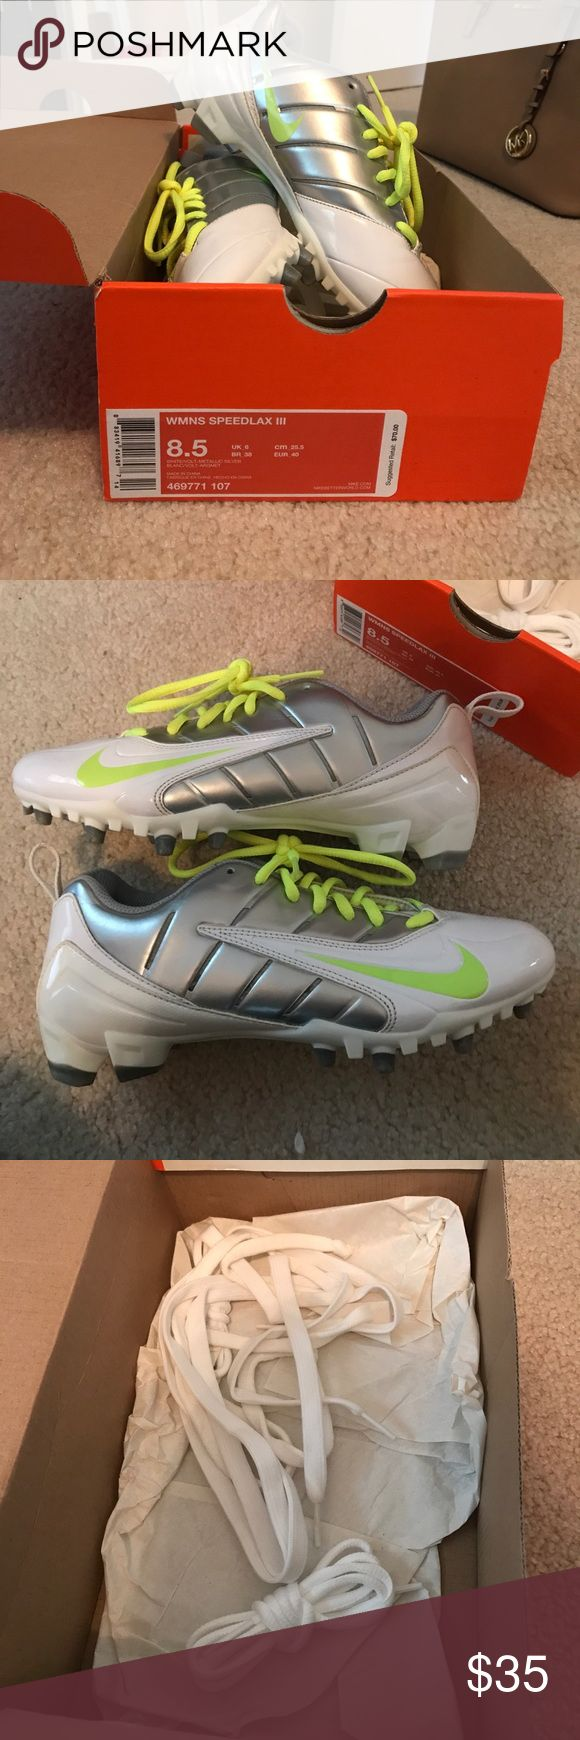 Women's Nike Lacrosse Cleats Basically brand new Nike Speedlax III lacrosse cleats, size 8.5. Only worn once, comes with white laces as well. Nike Shoes Athletic Shoes